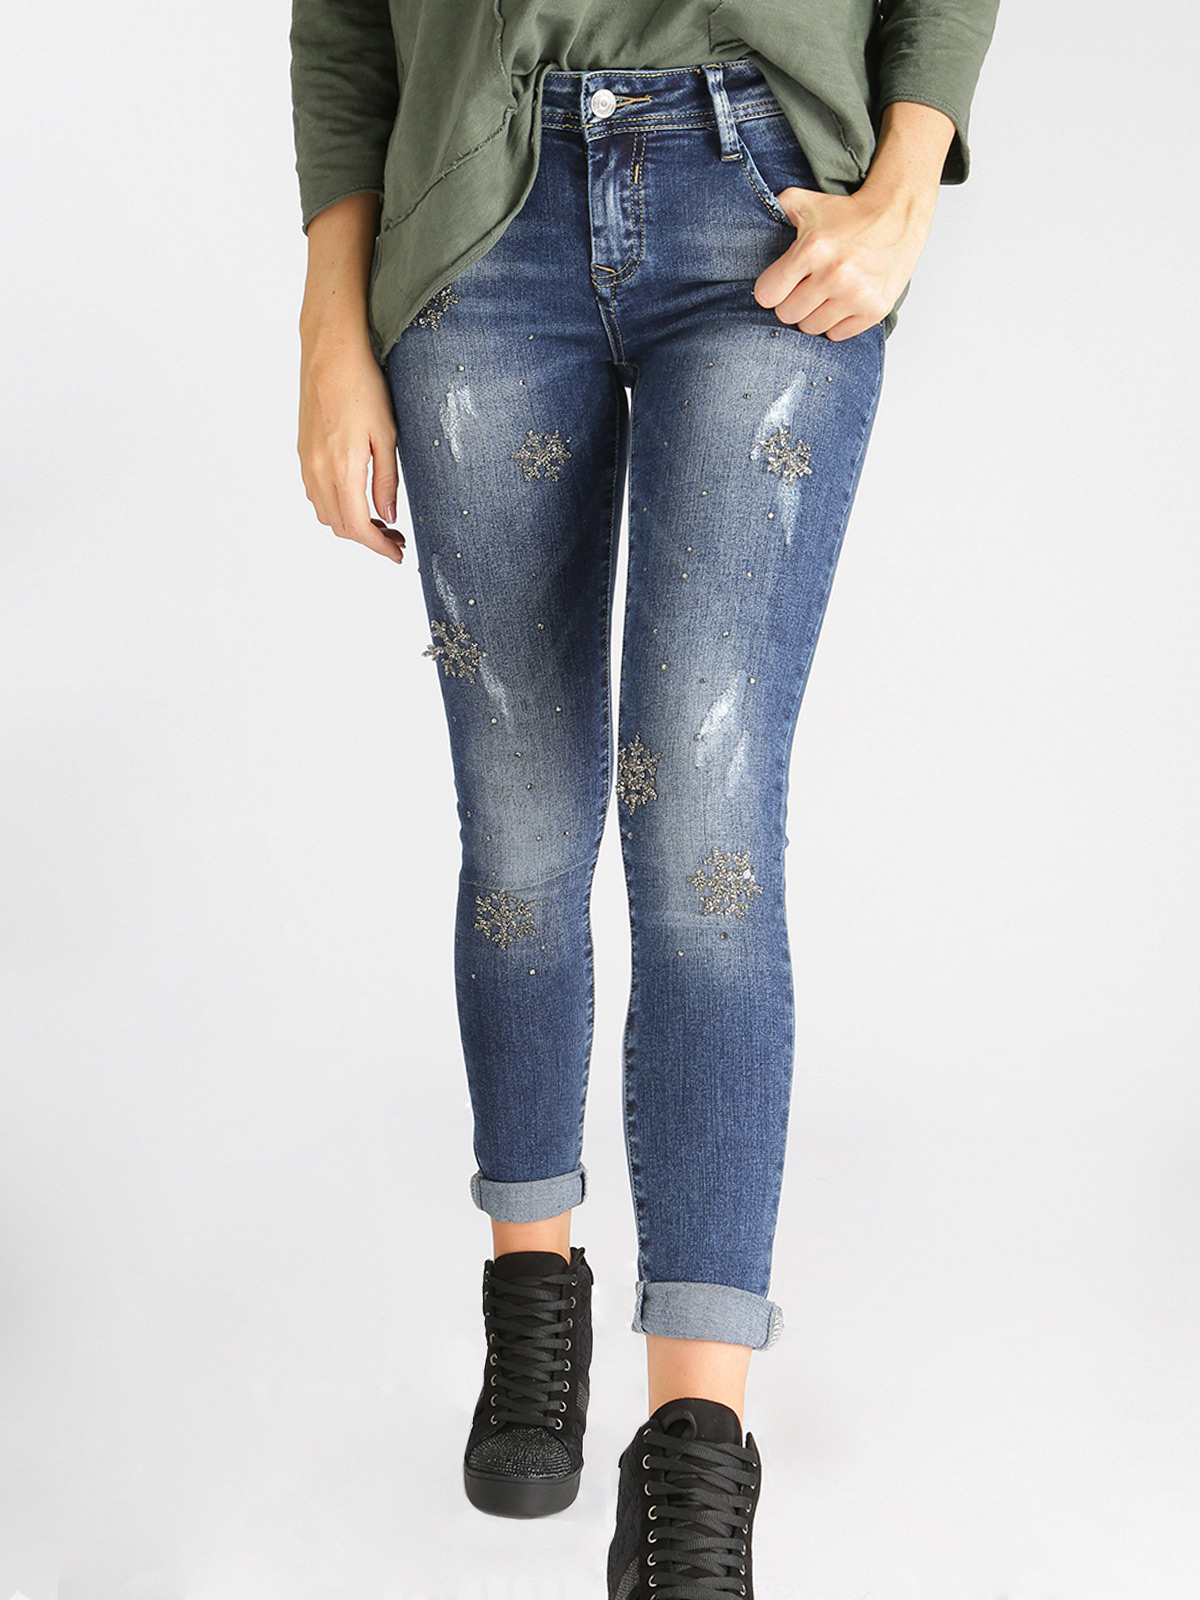 Jeans Effect Washed With Rhinestone